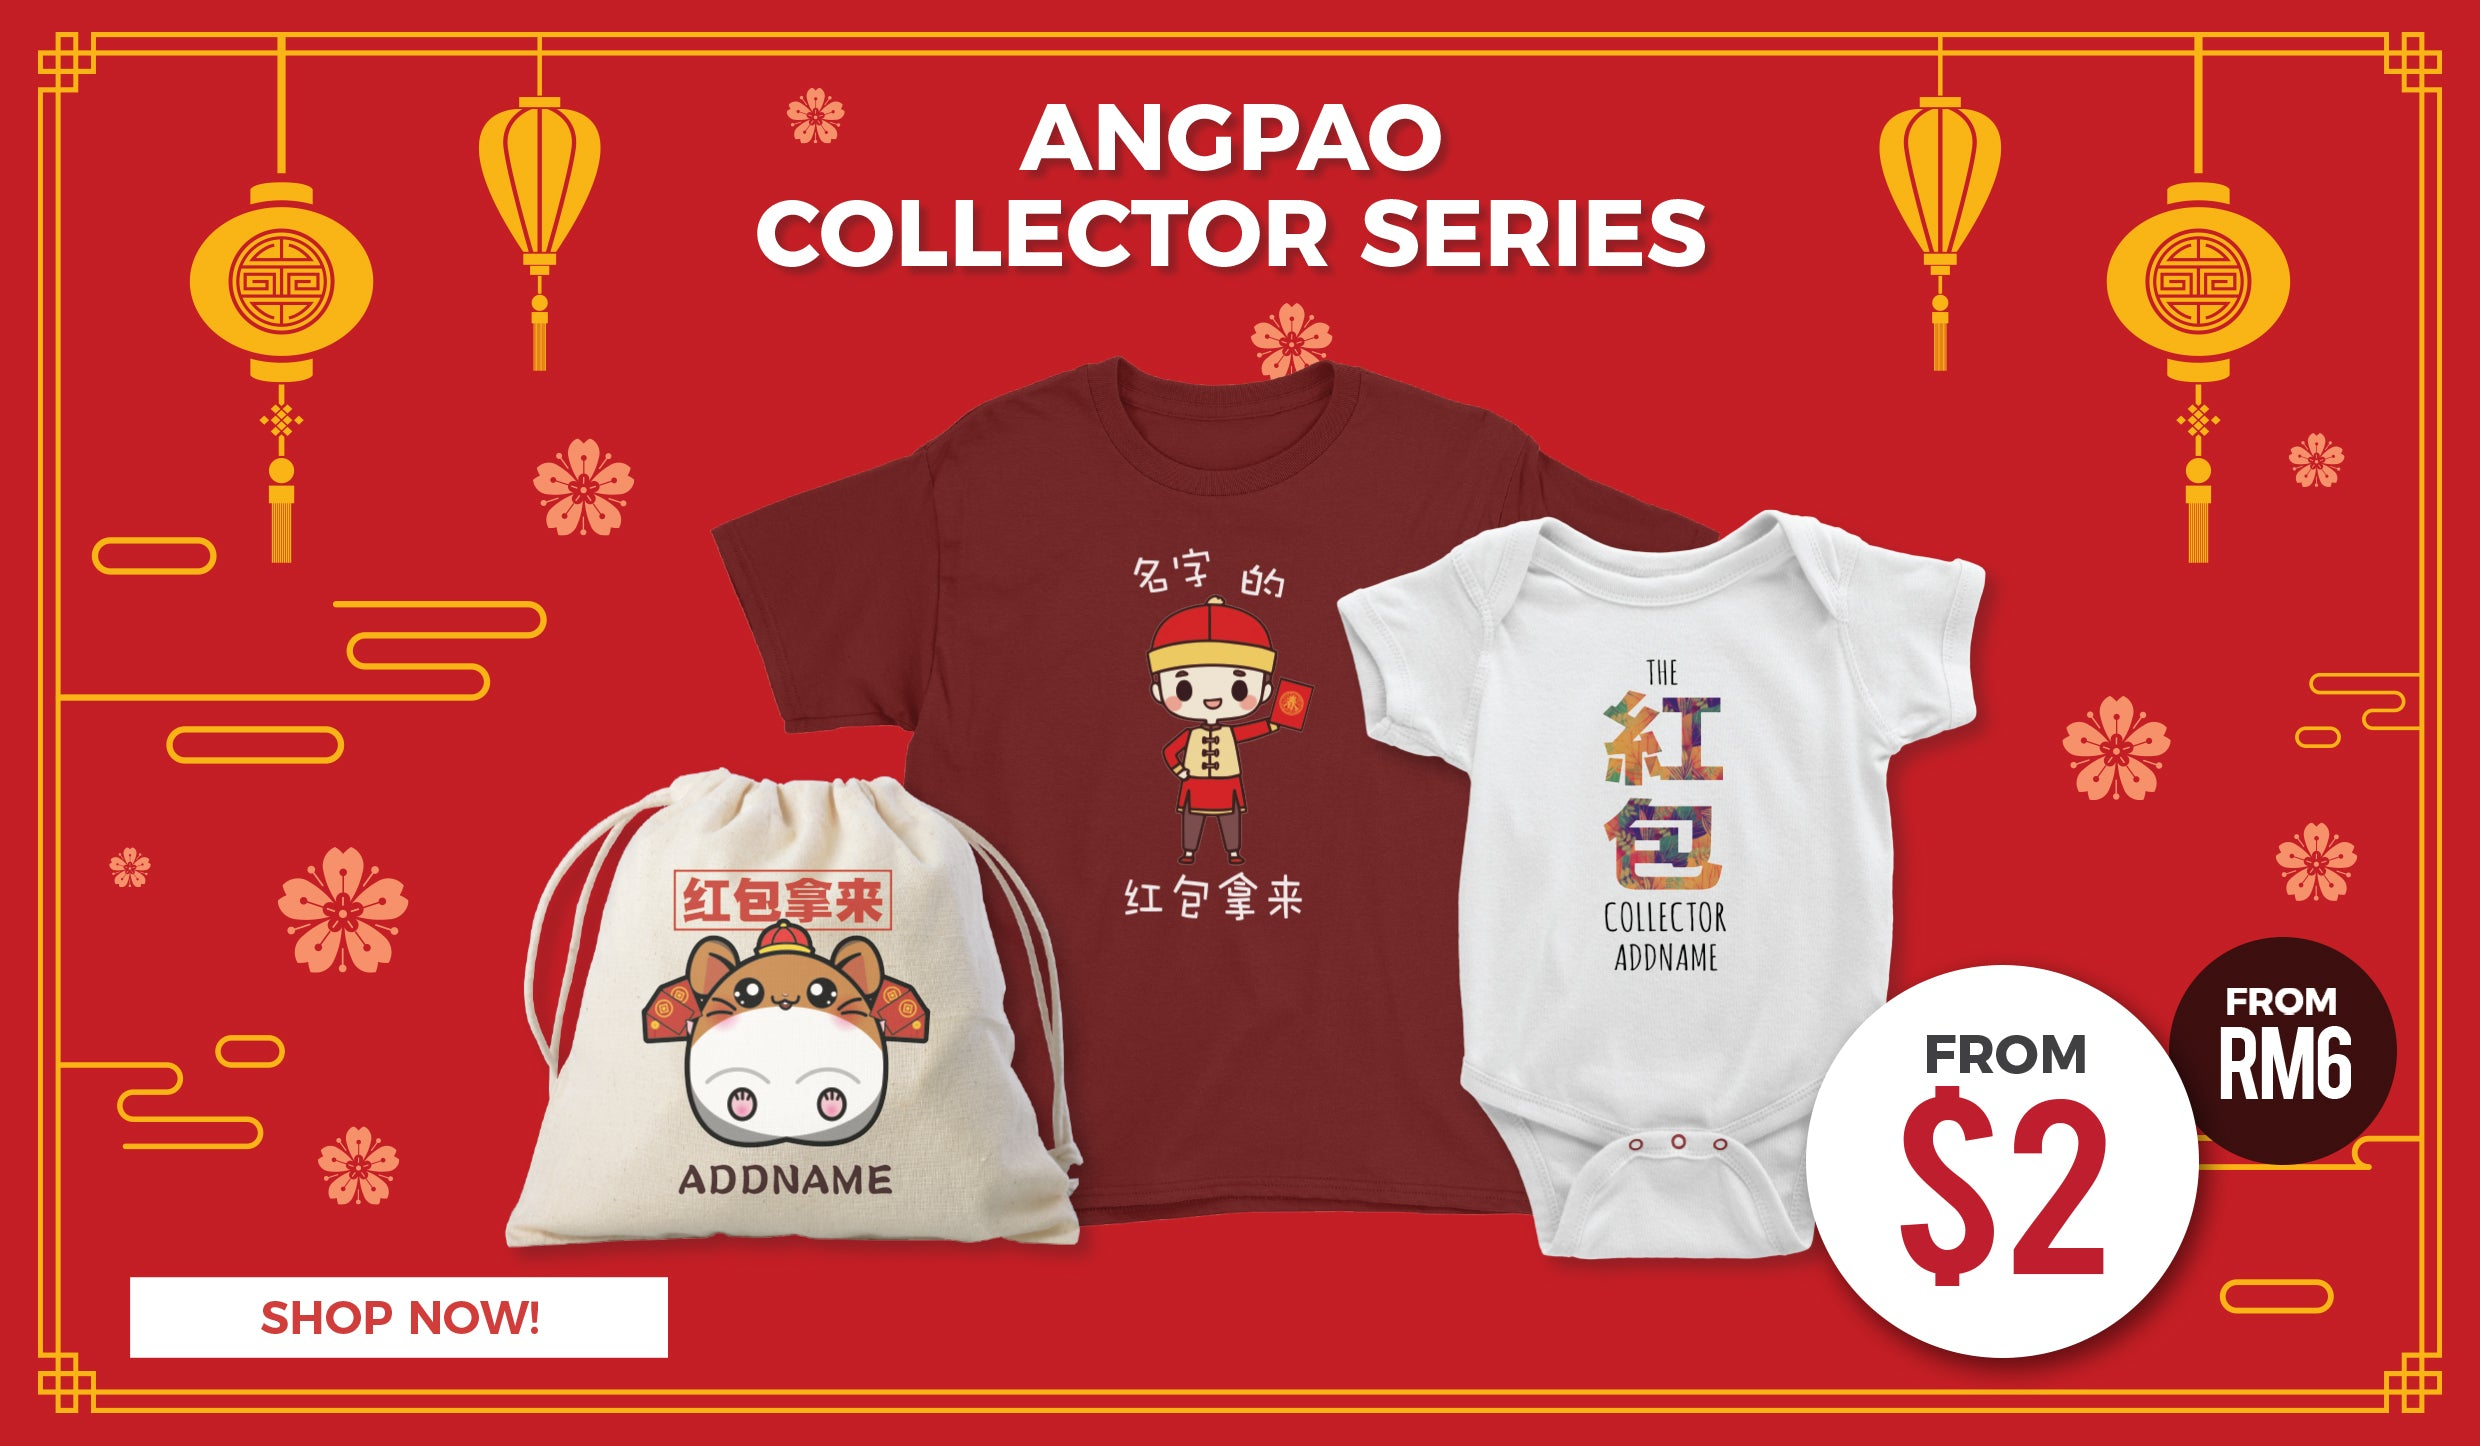 AOPAO-COLLECTOR-WEBSITE-SLIDER.jpg